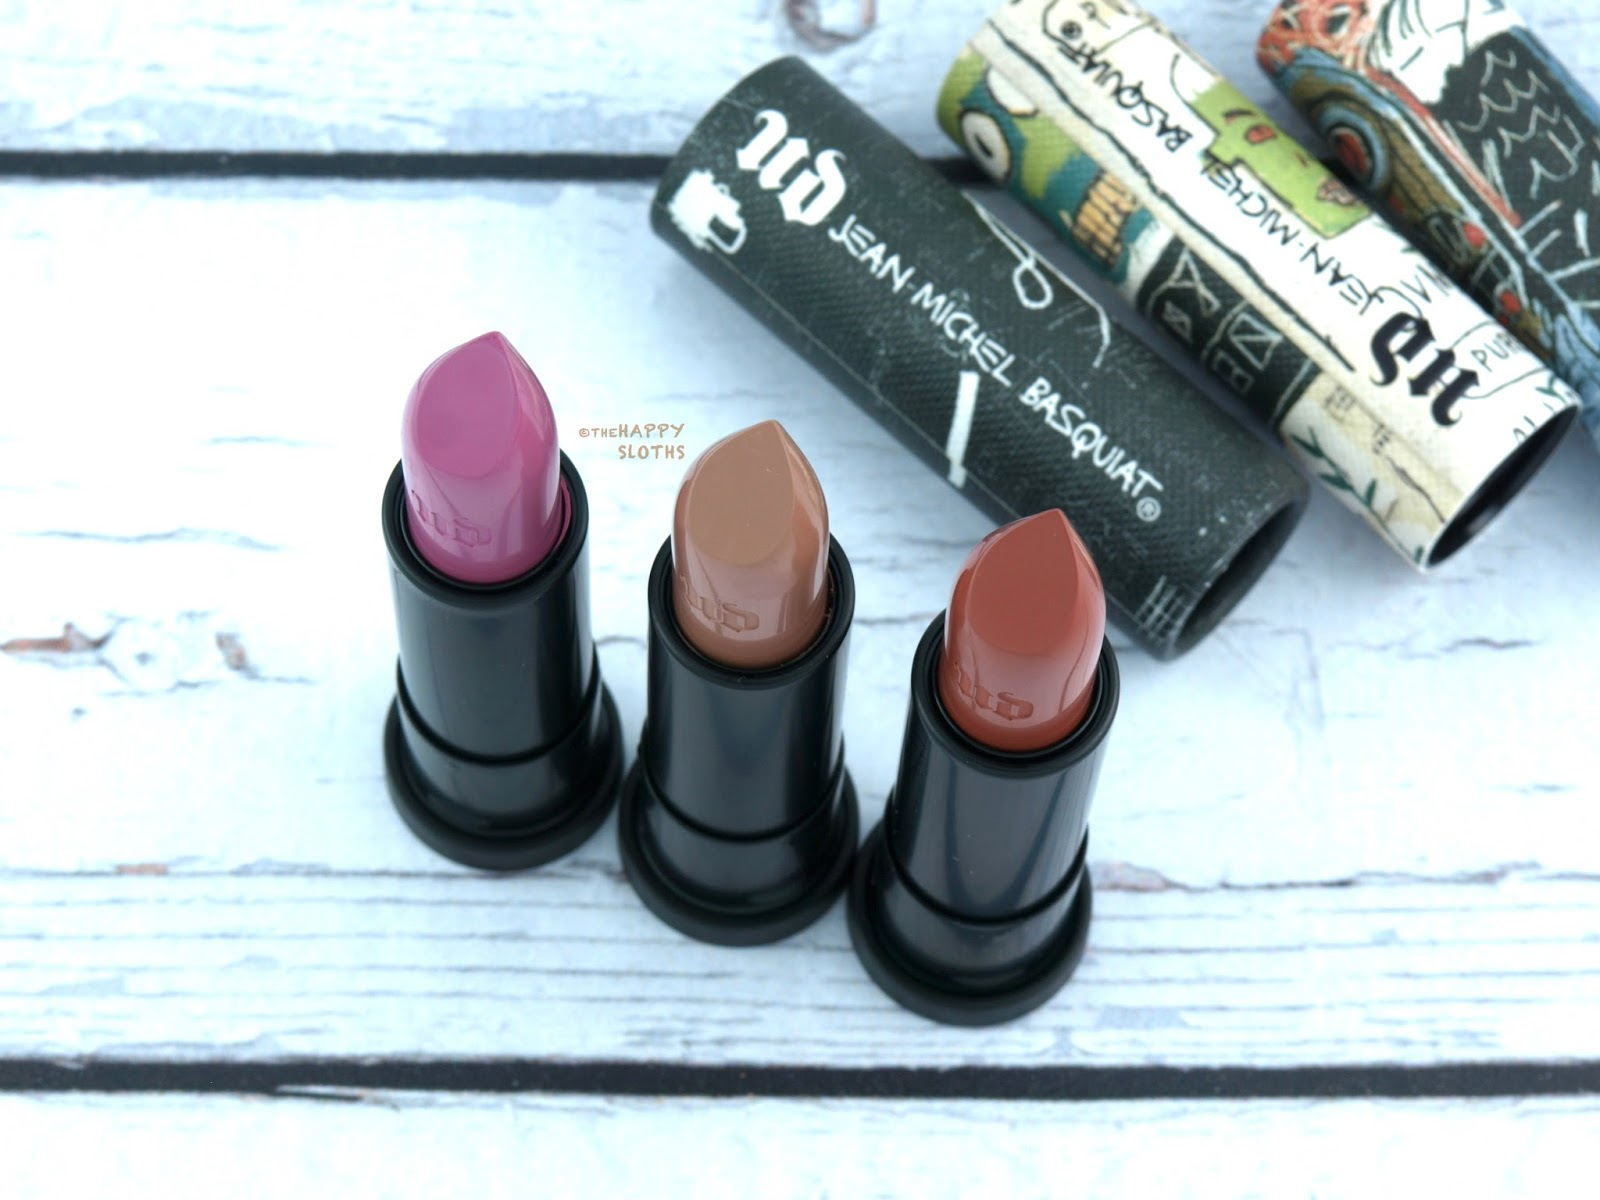 Urban Decay x Basquiat Lipstick: Review and Swatches